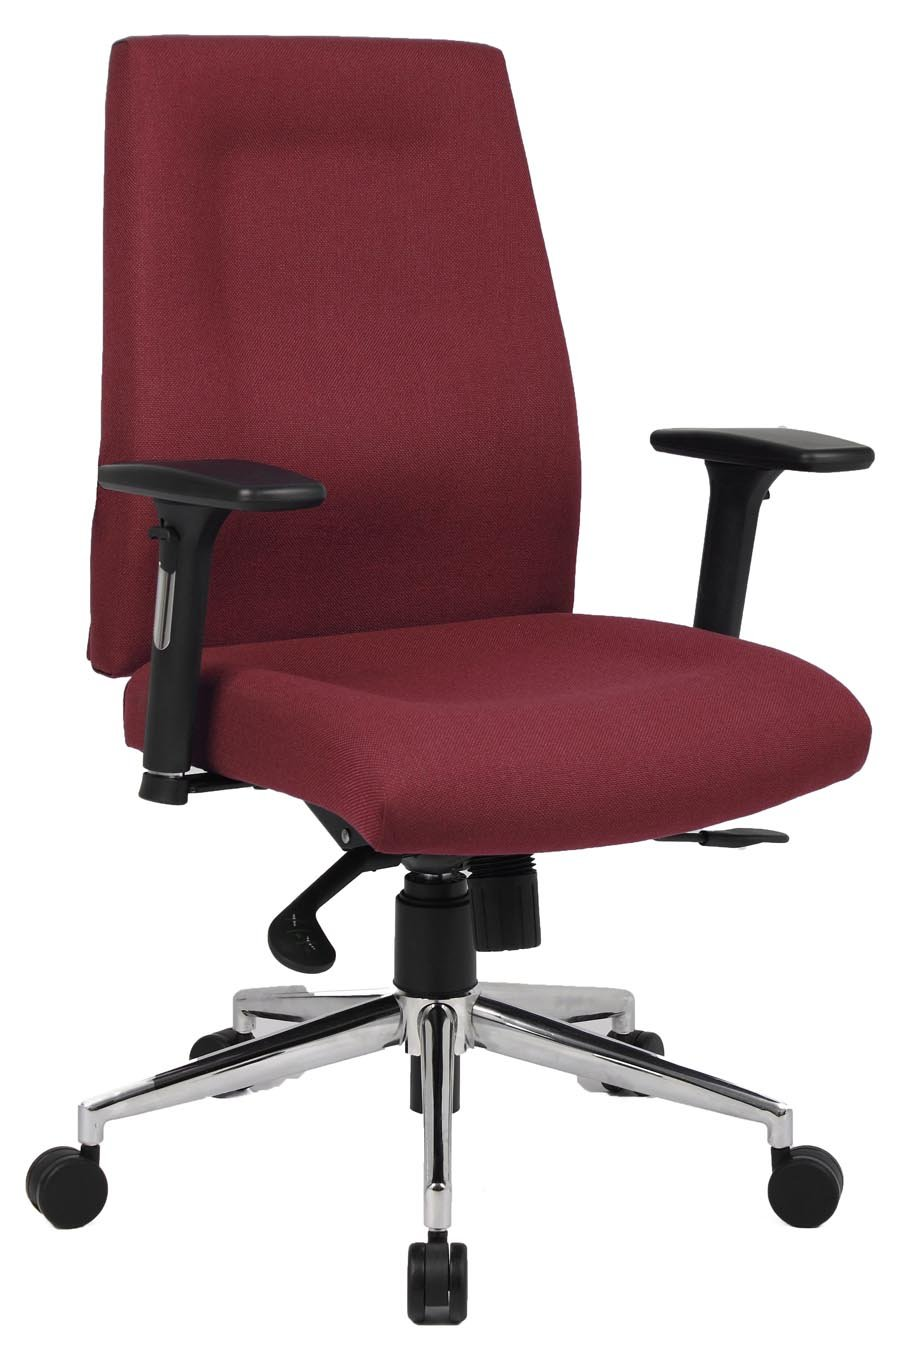 Black Bungee Chair Outrageou Nice 24 7 Office Bar Height Folding Table Design